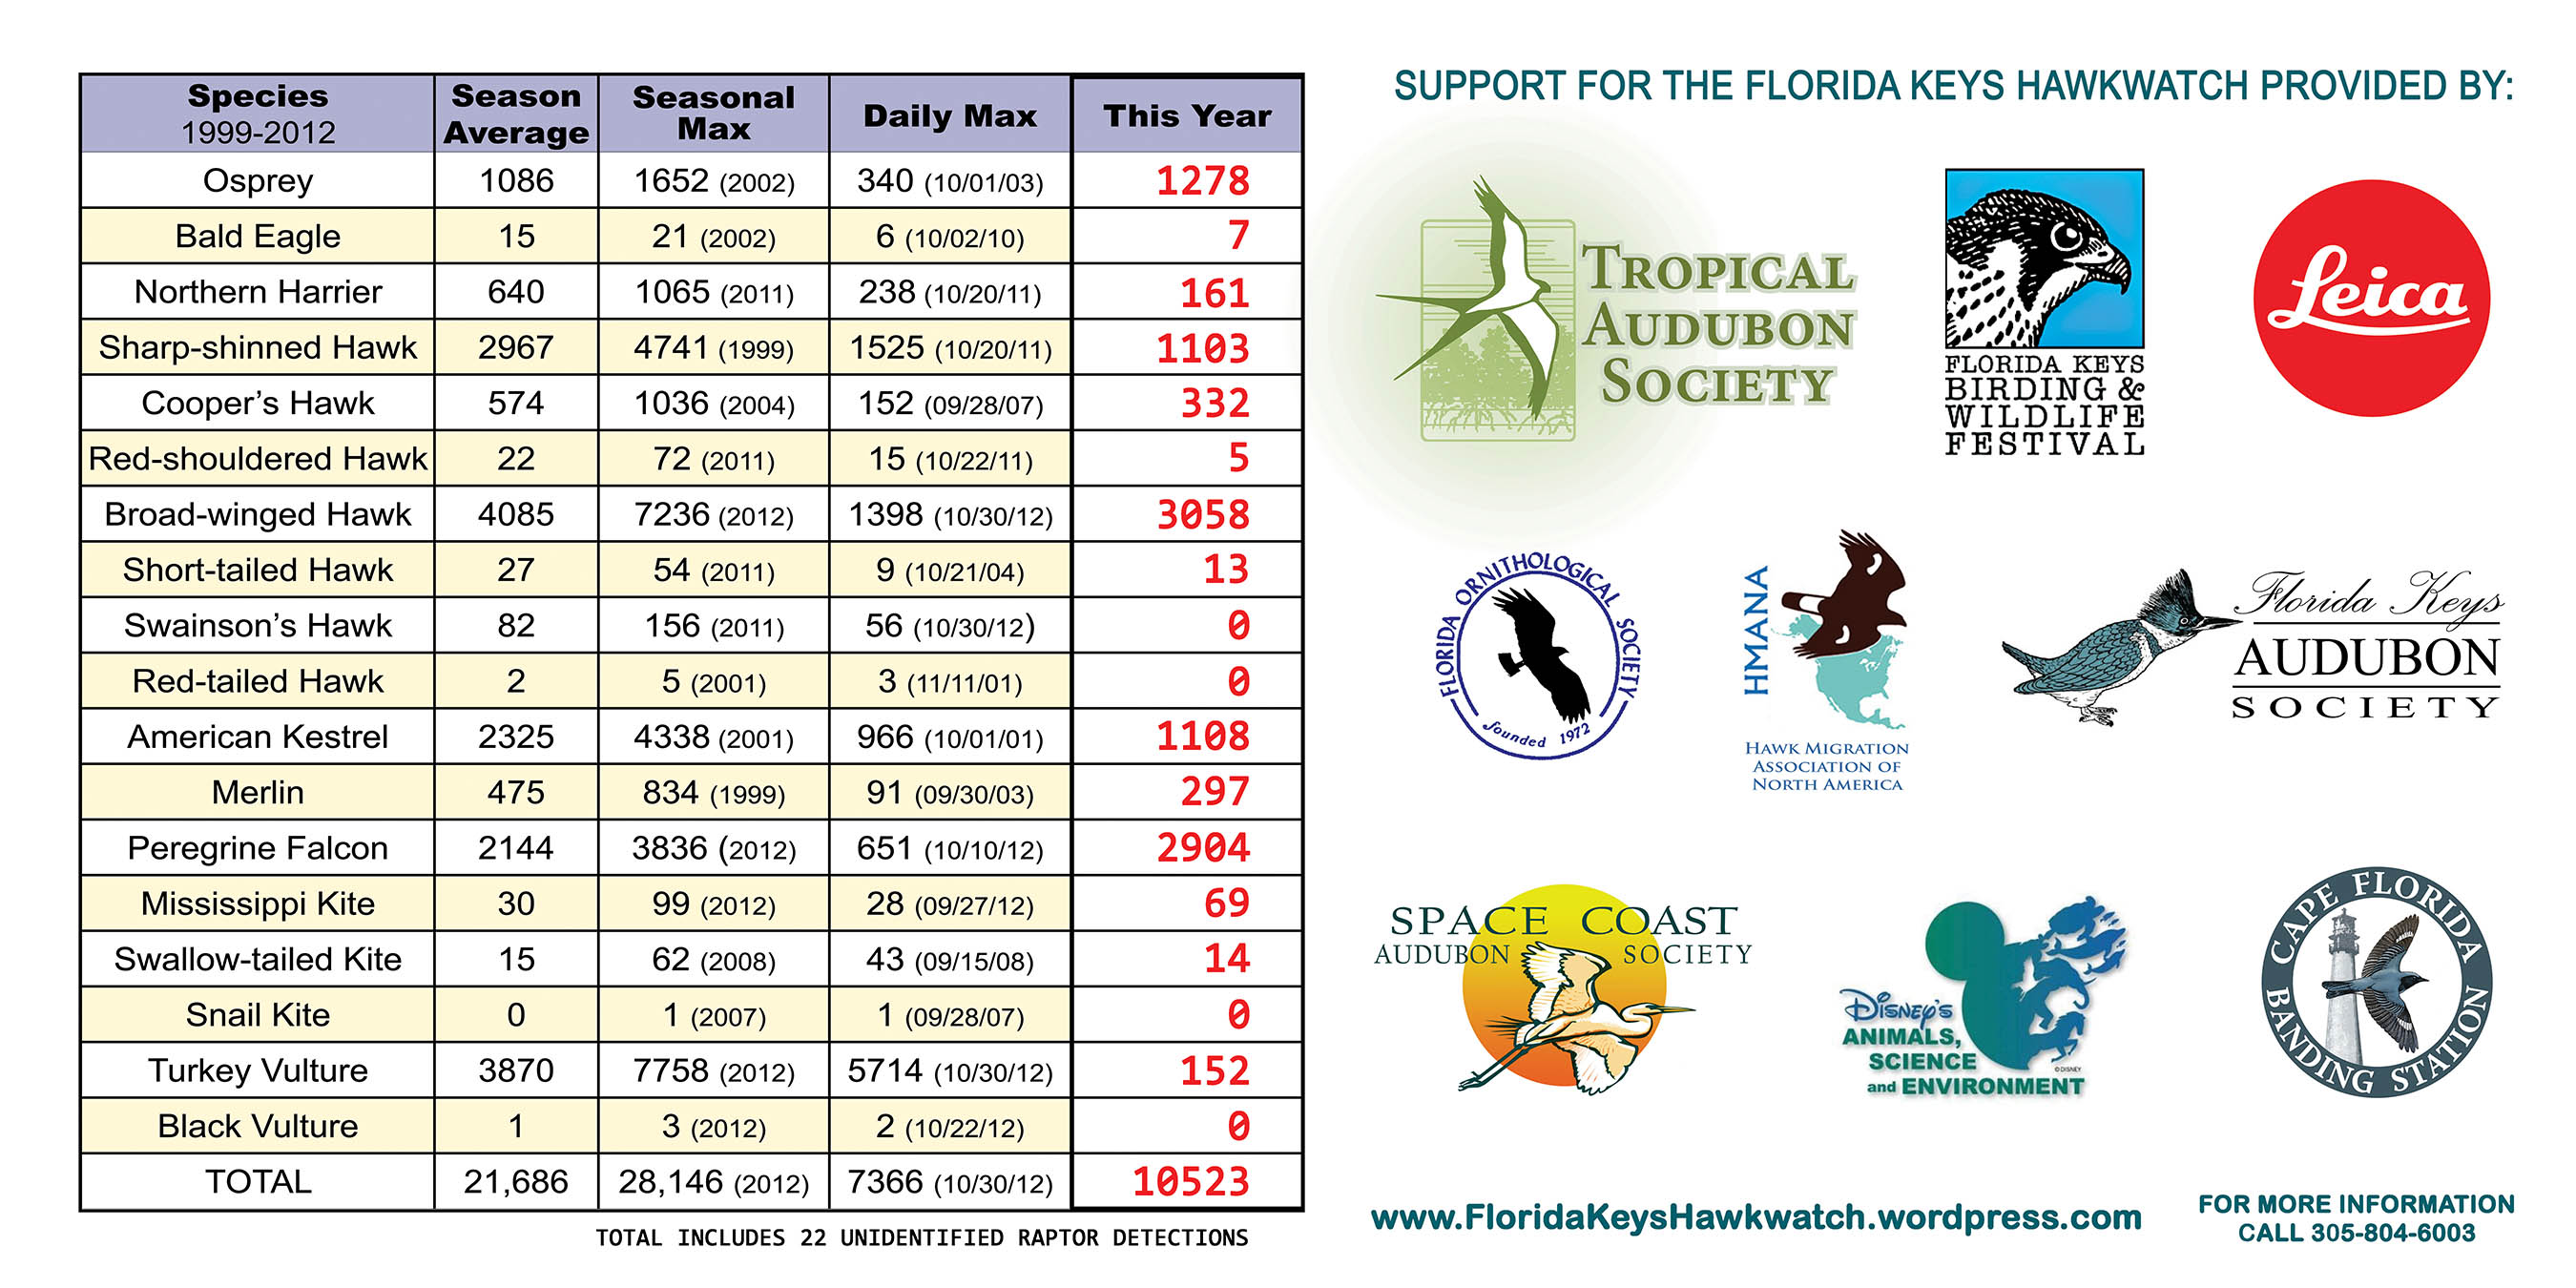 Florida keys hawkwatch dedicated to promoting the appreciation fkh results up to oct 10 nvjuhfo Image collections